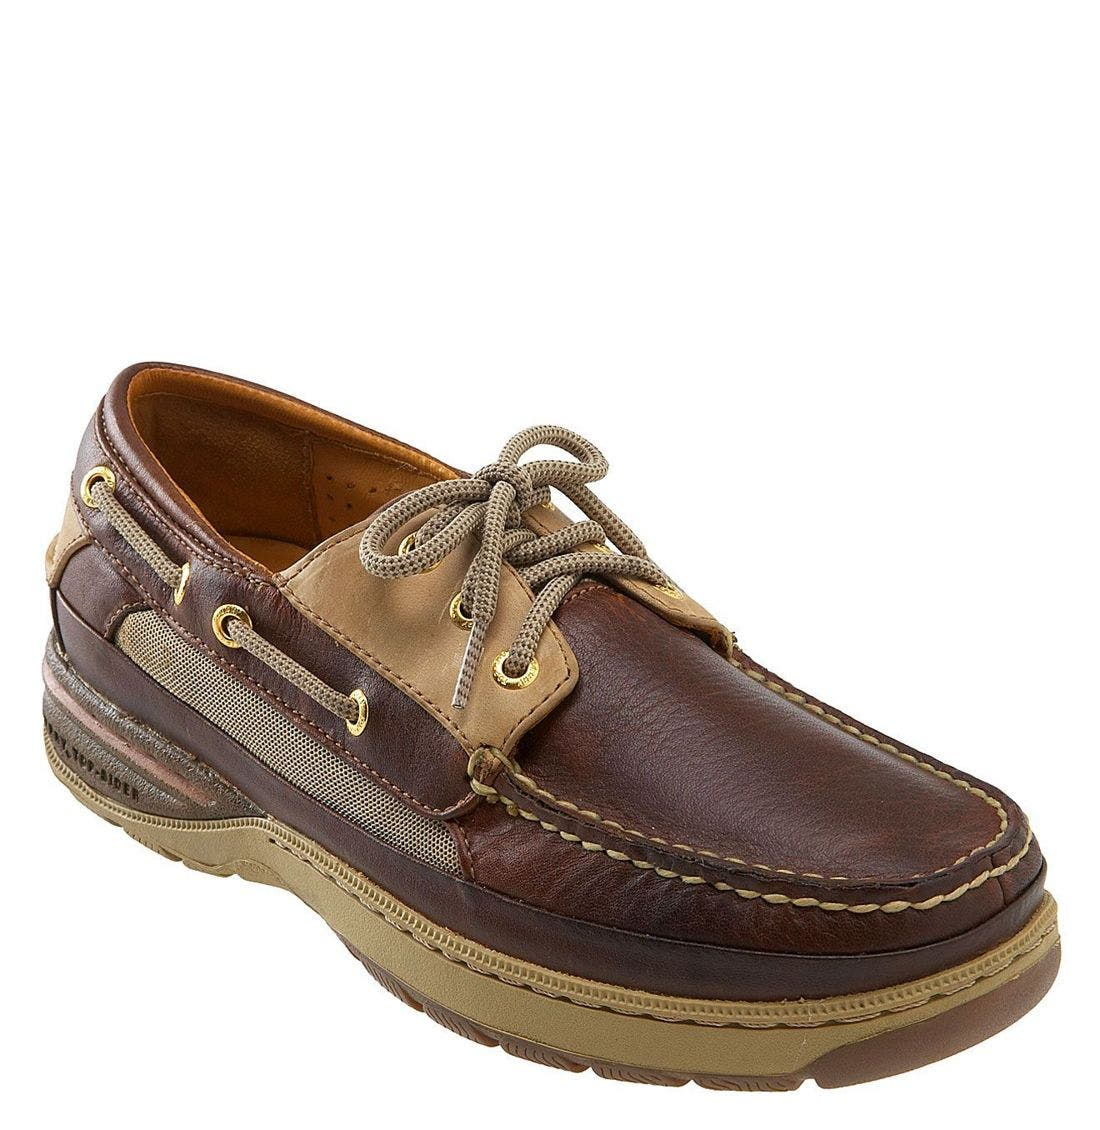 Alternate Image 1 Selected - Sperry 'Gold Billfish 3-Eye' Boat Shoe